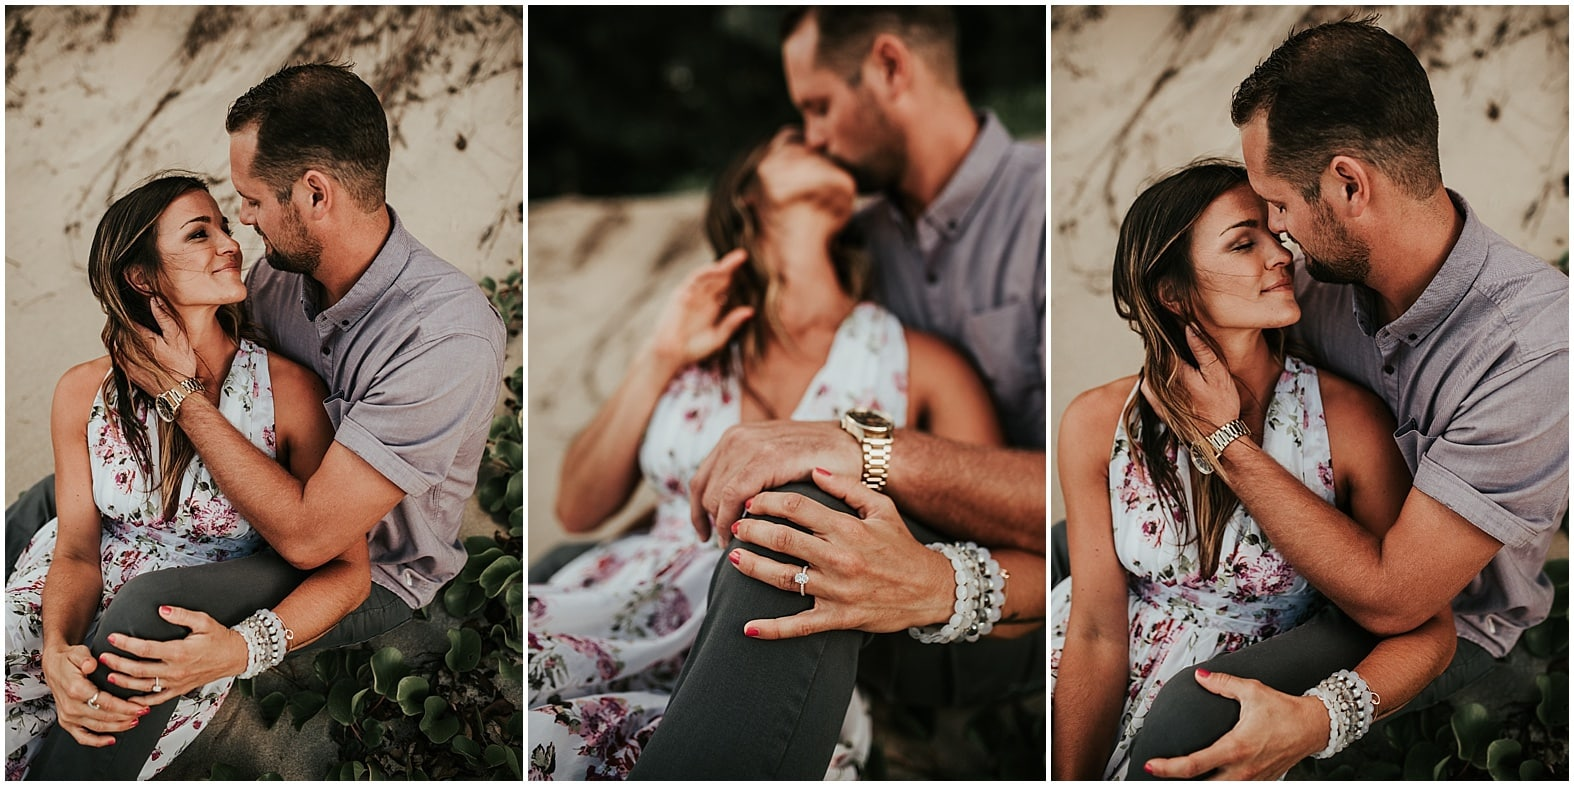 Stefanie and Derek ~ Engagement session in Kapalua, Hawaii